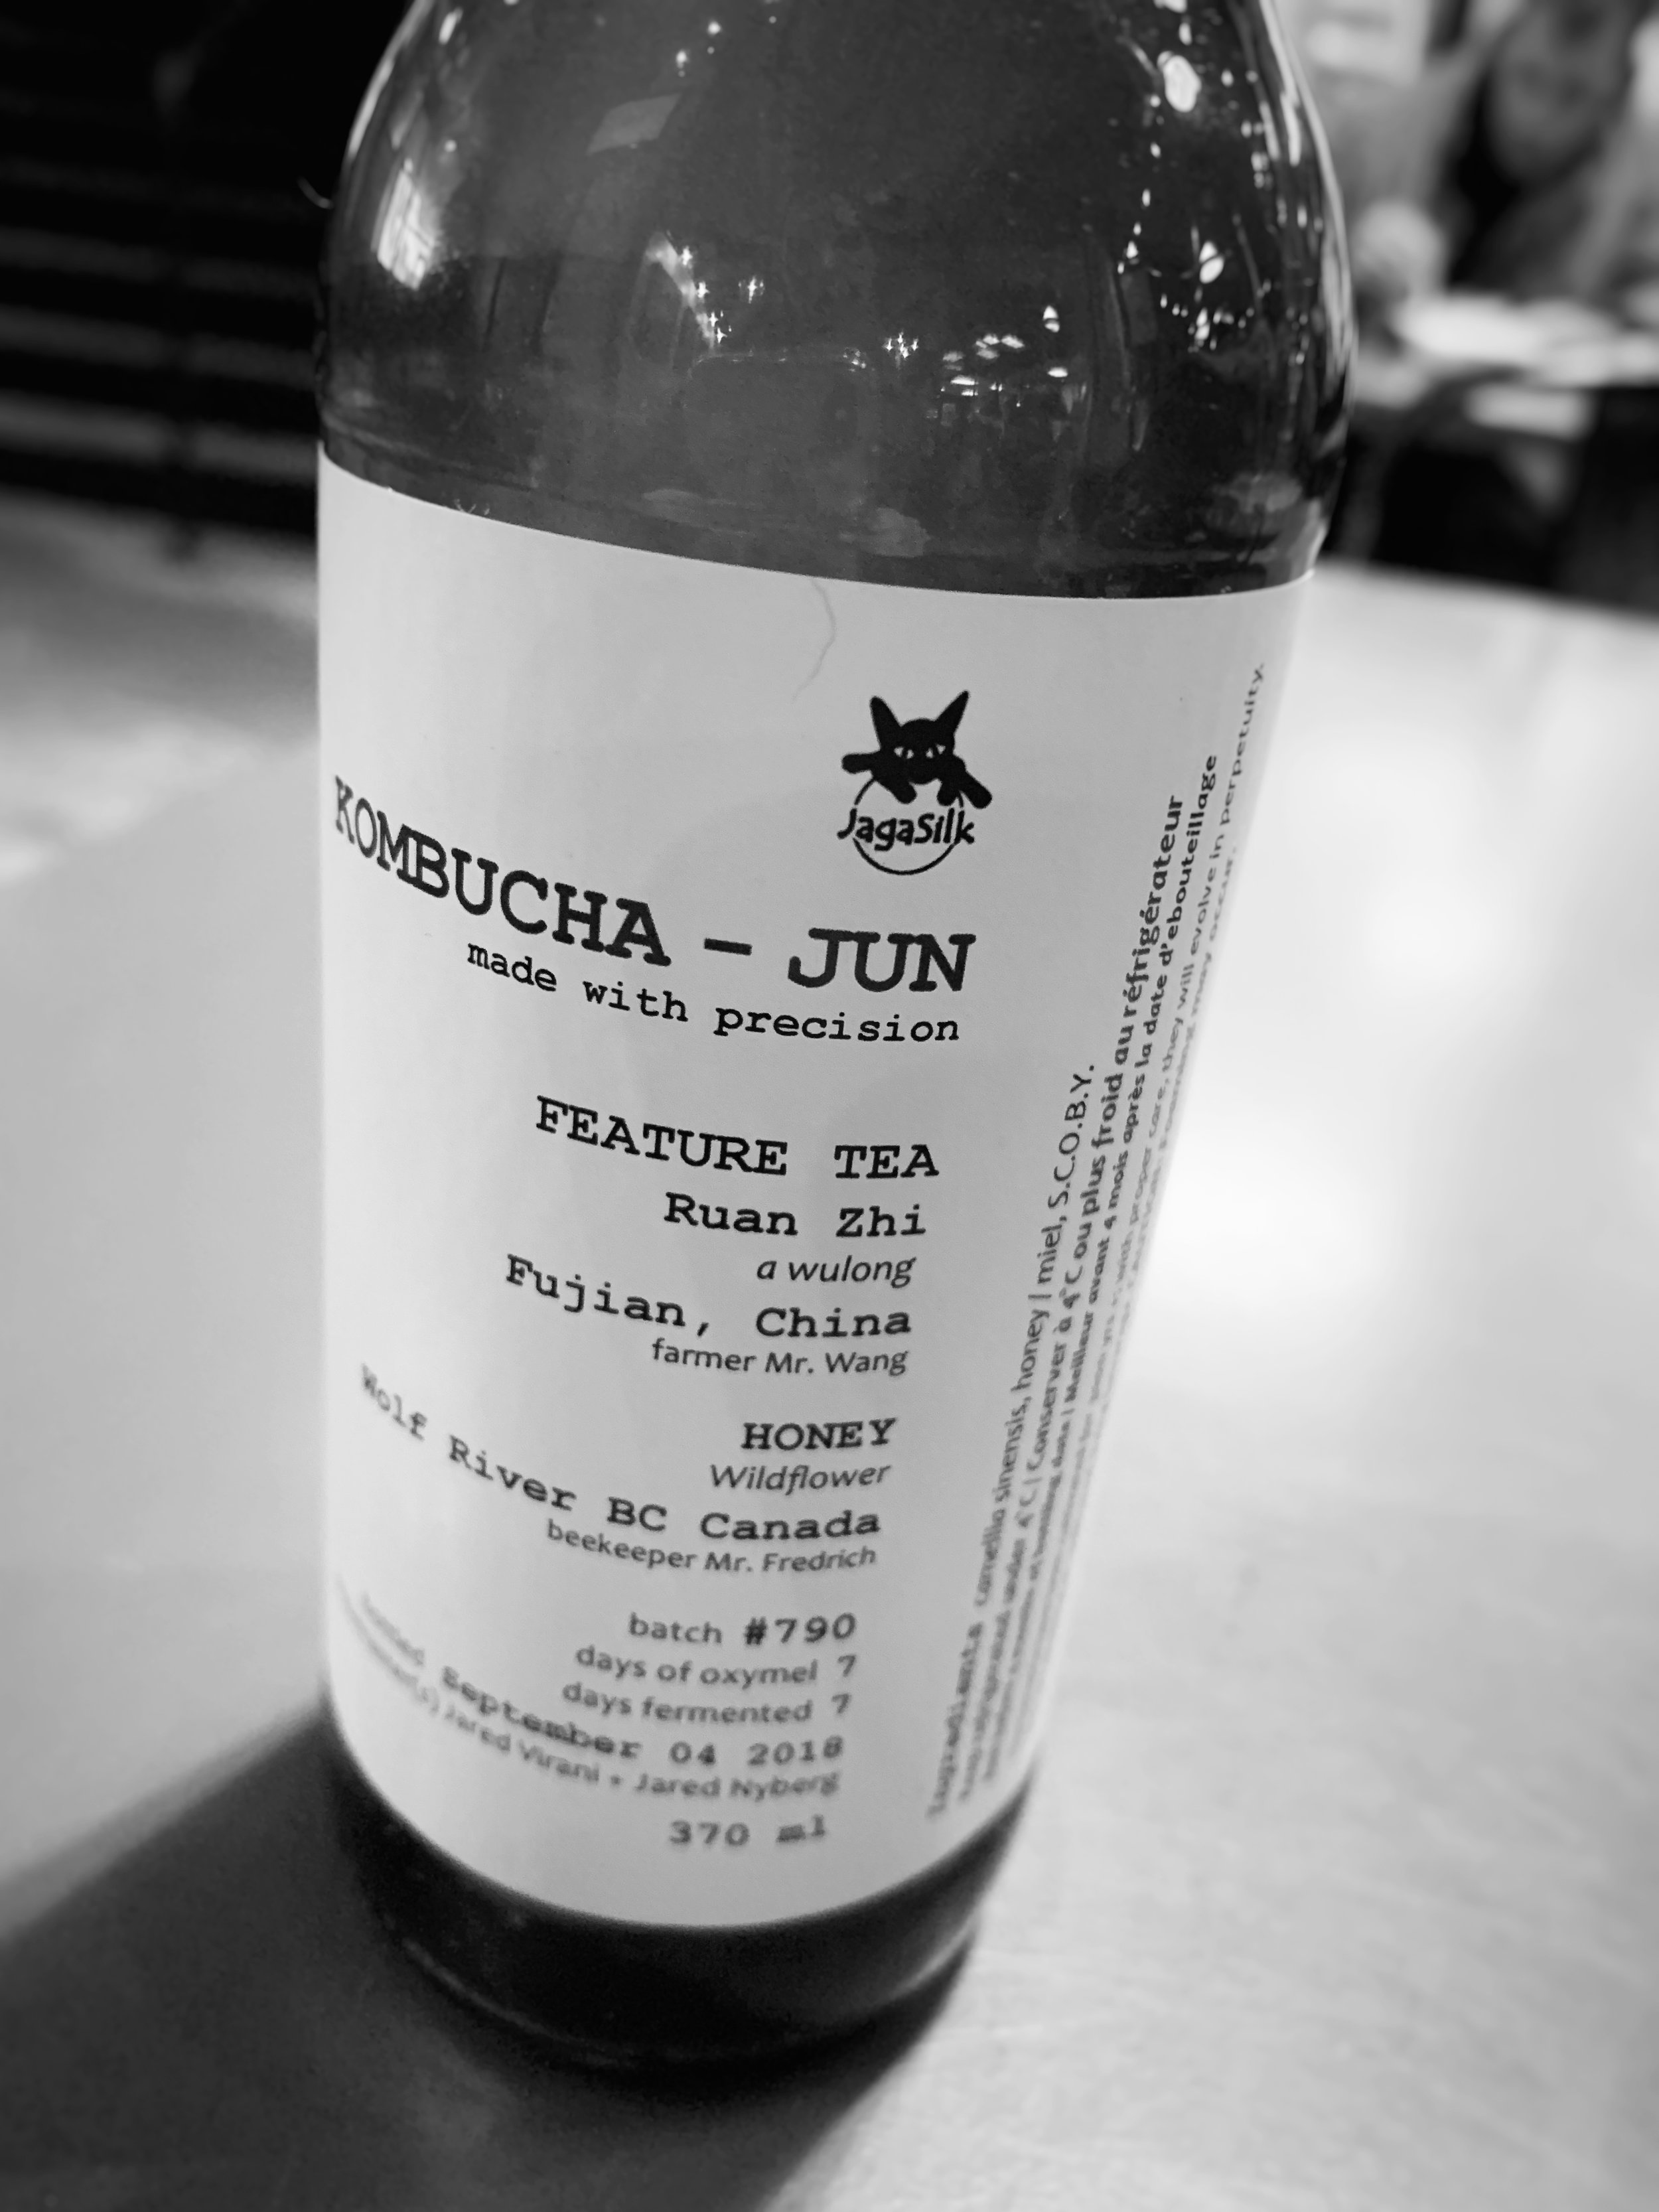 Locally made jun kombucha by JagaSilk